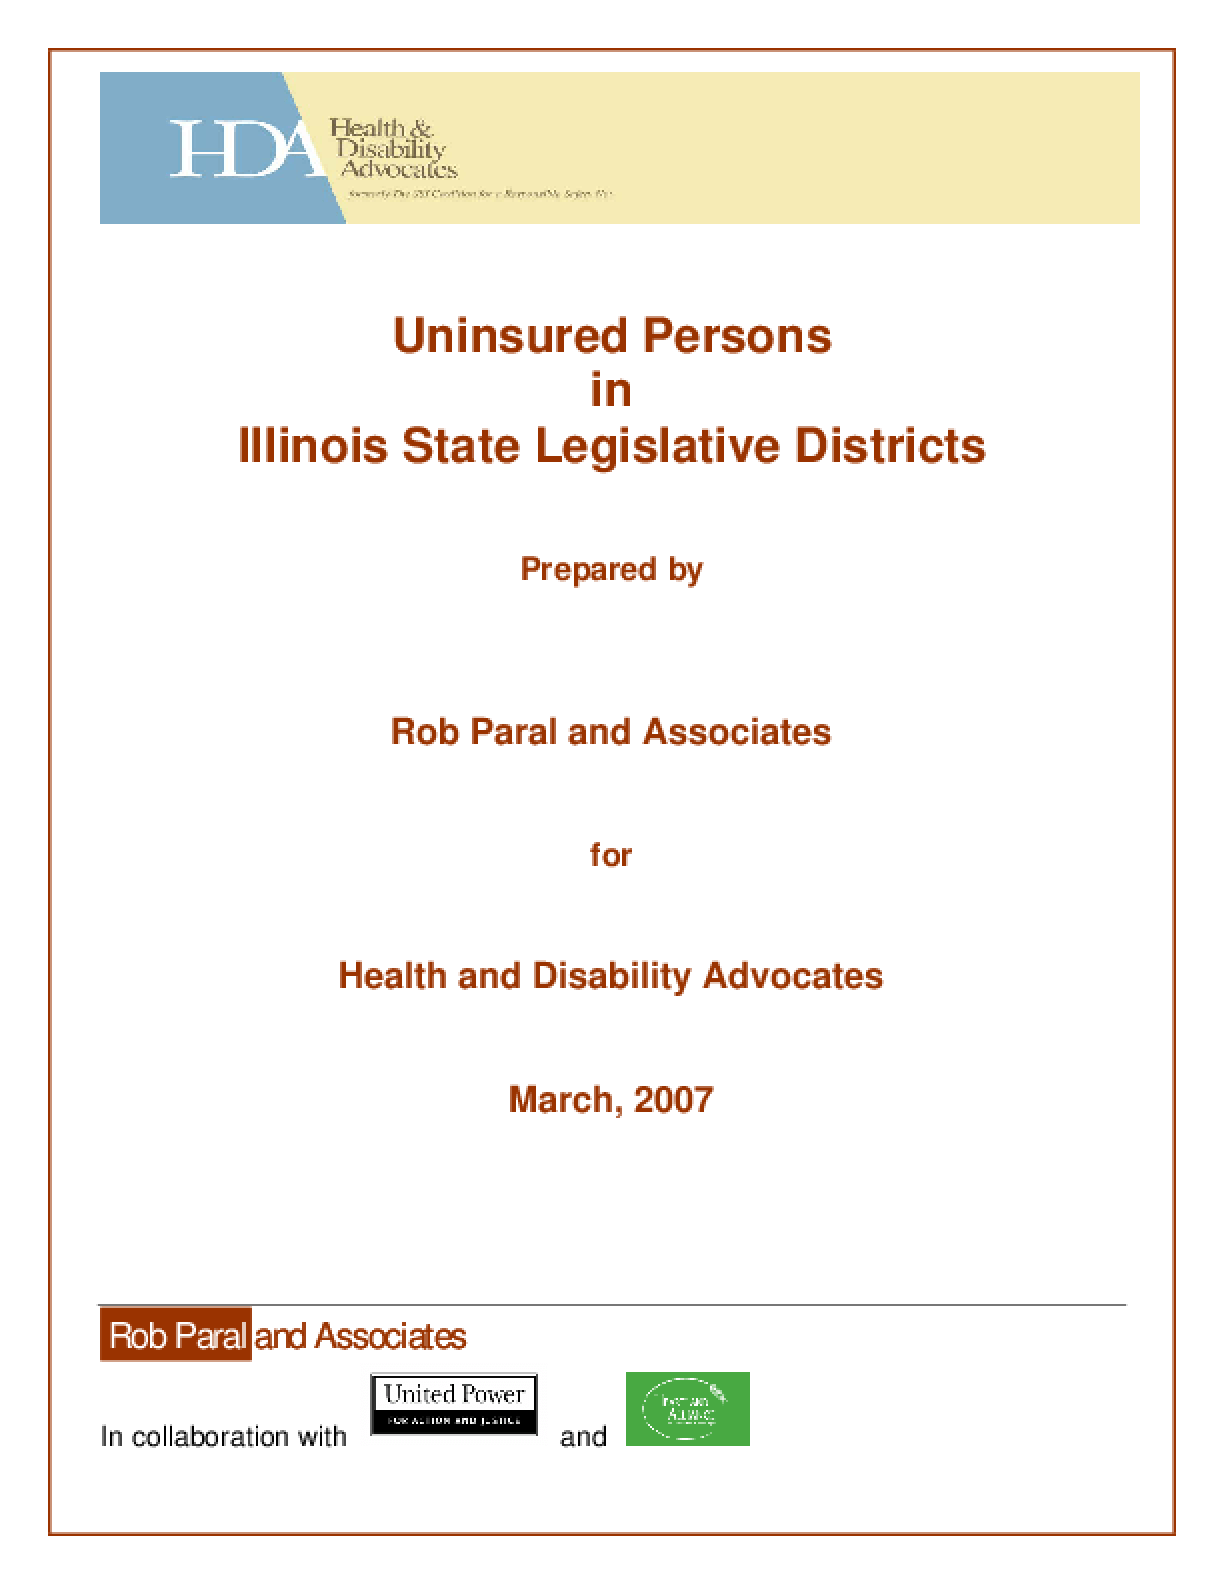 Uninsured Persons in Illinois Legislative Districts